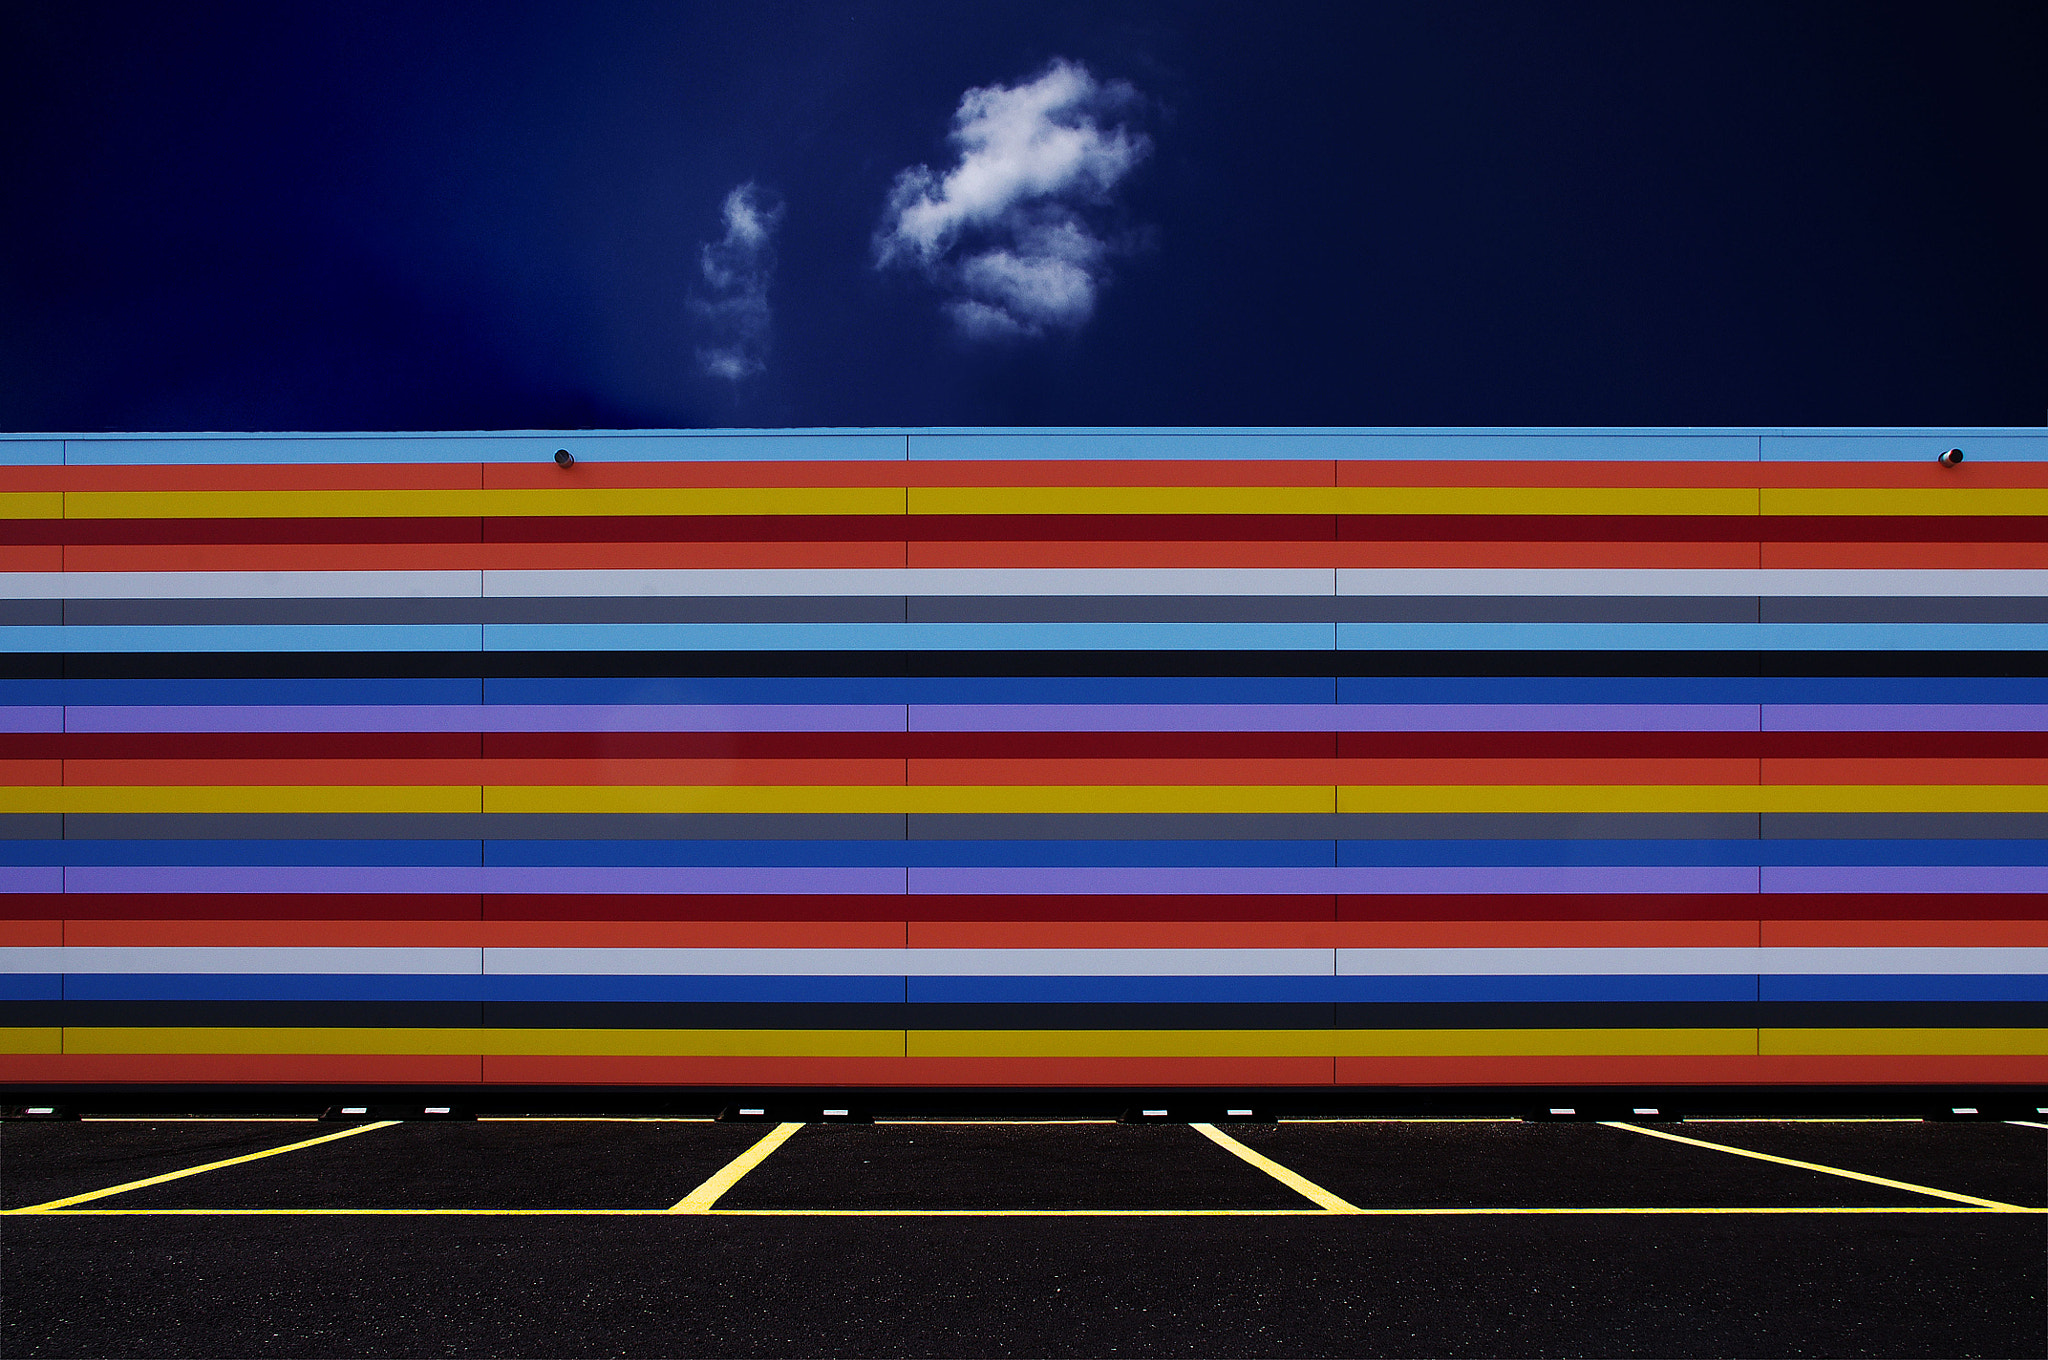 Photograph free cloud parking by Michael Köster on 500px